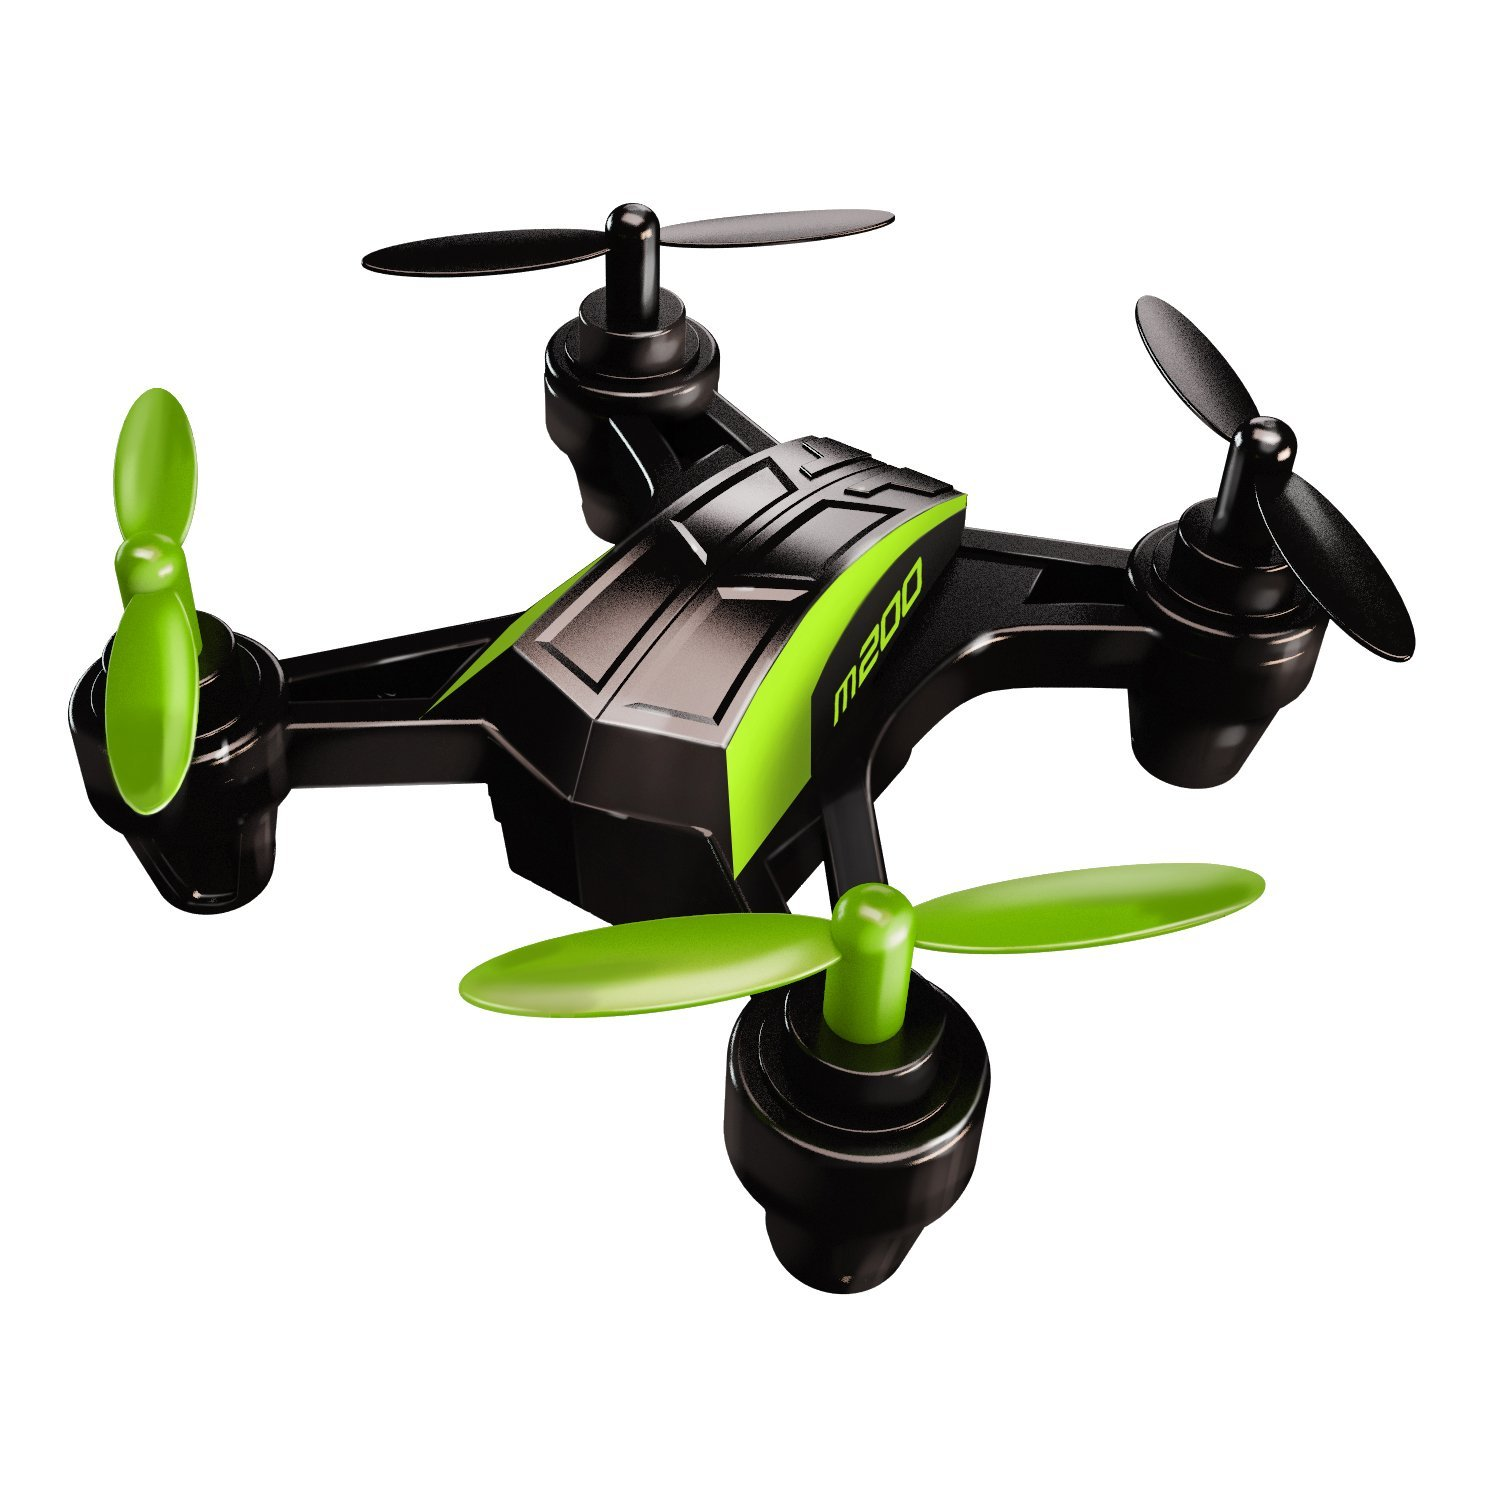 helicopter blades for sale with Sky Viper Nano Drone Review on Diecast blue thunder organic and dream machine likewise 2217 2016 Turbine Helicopter Airframe Eurocopter Ec155 besides Mosquito Mosquito Air in addition Watch furthermore This Diy Hoverbike Is Every Star Wars Fans Fantasy 1390119.